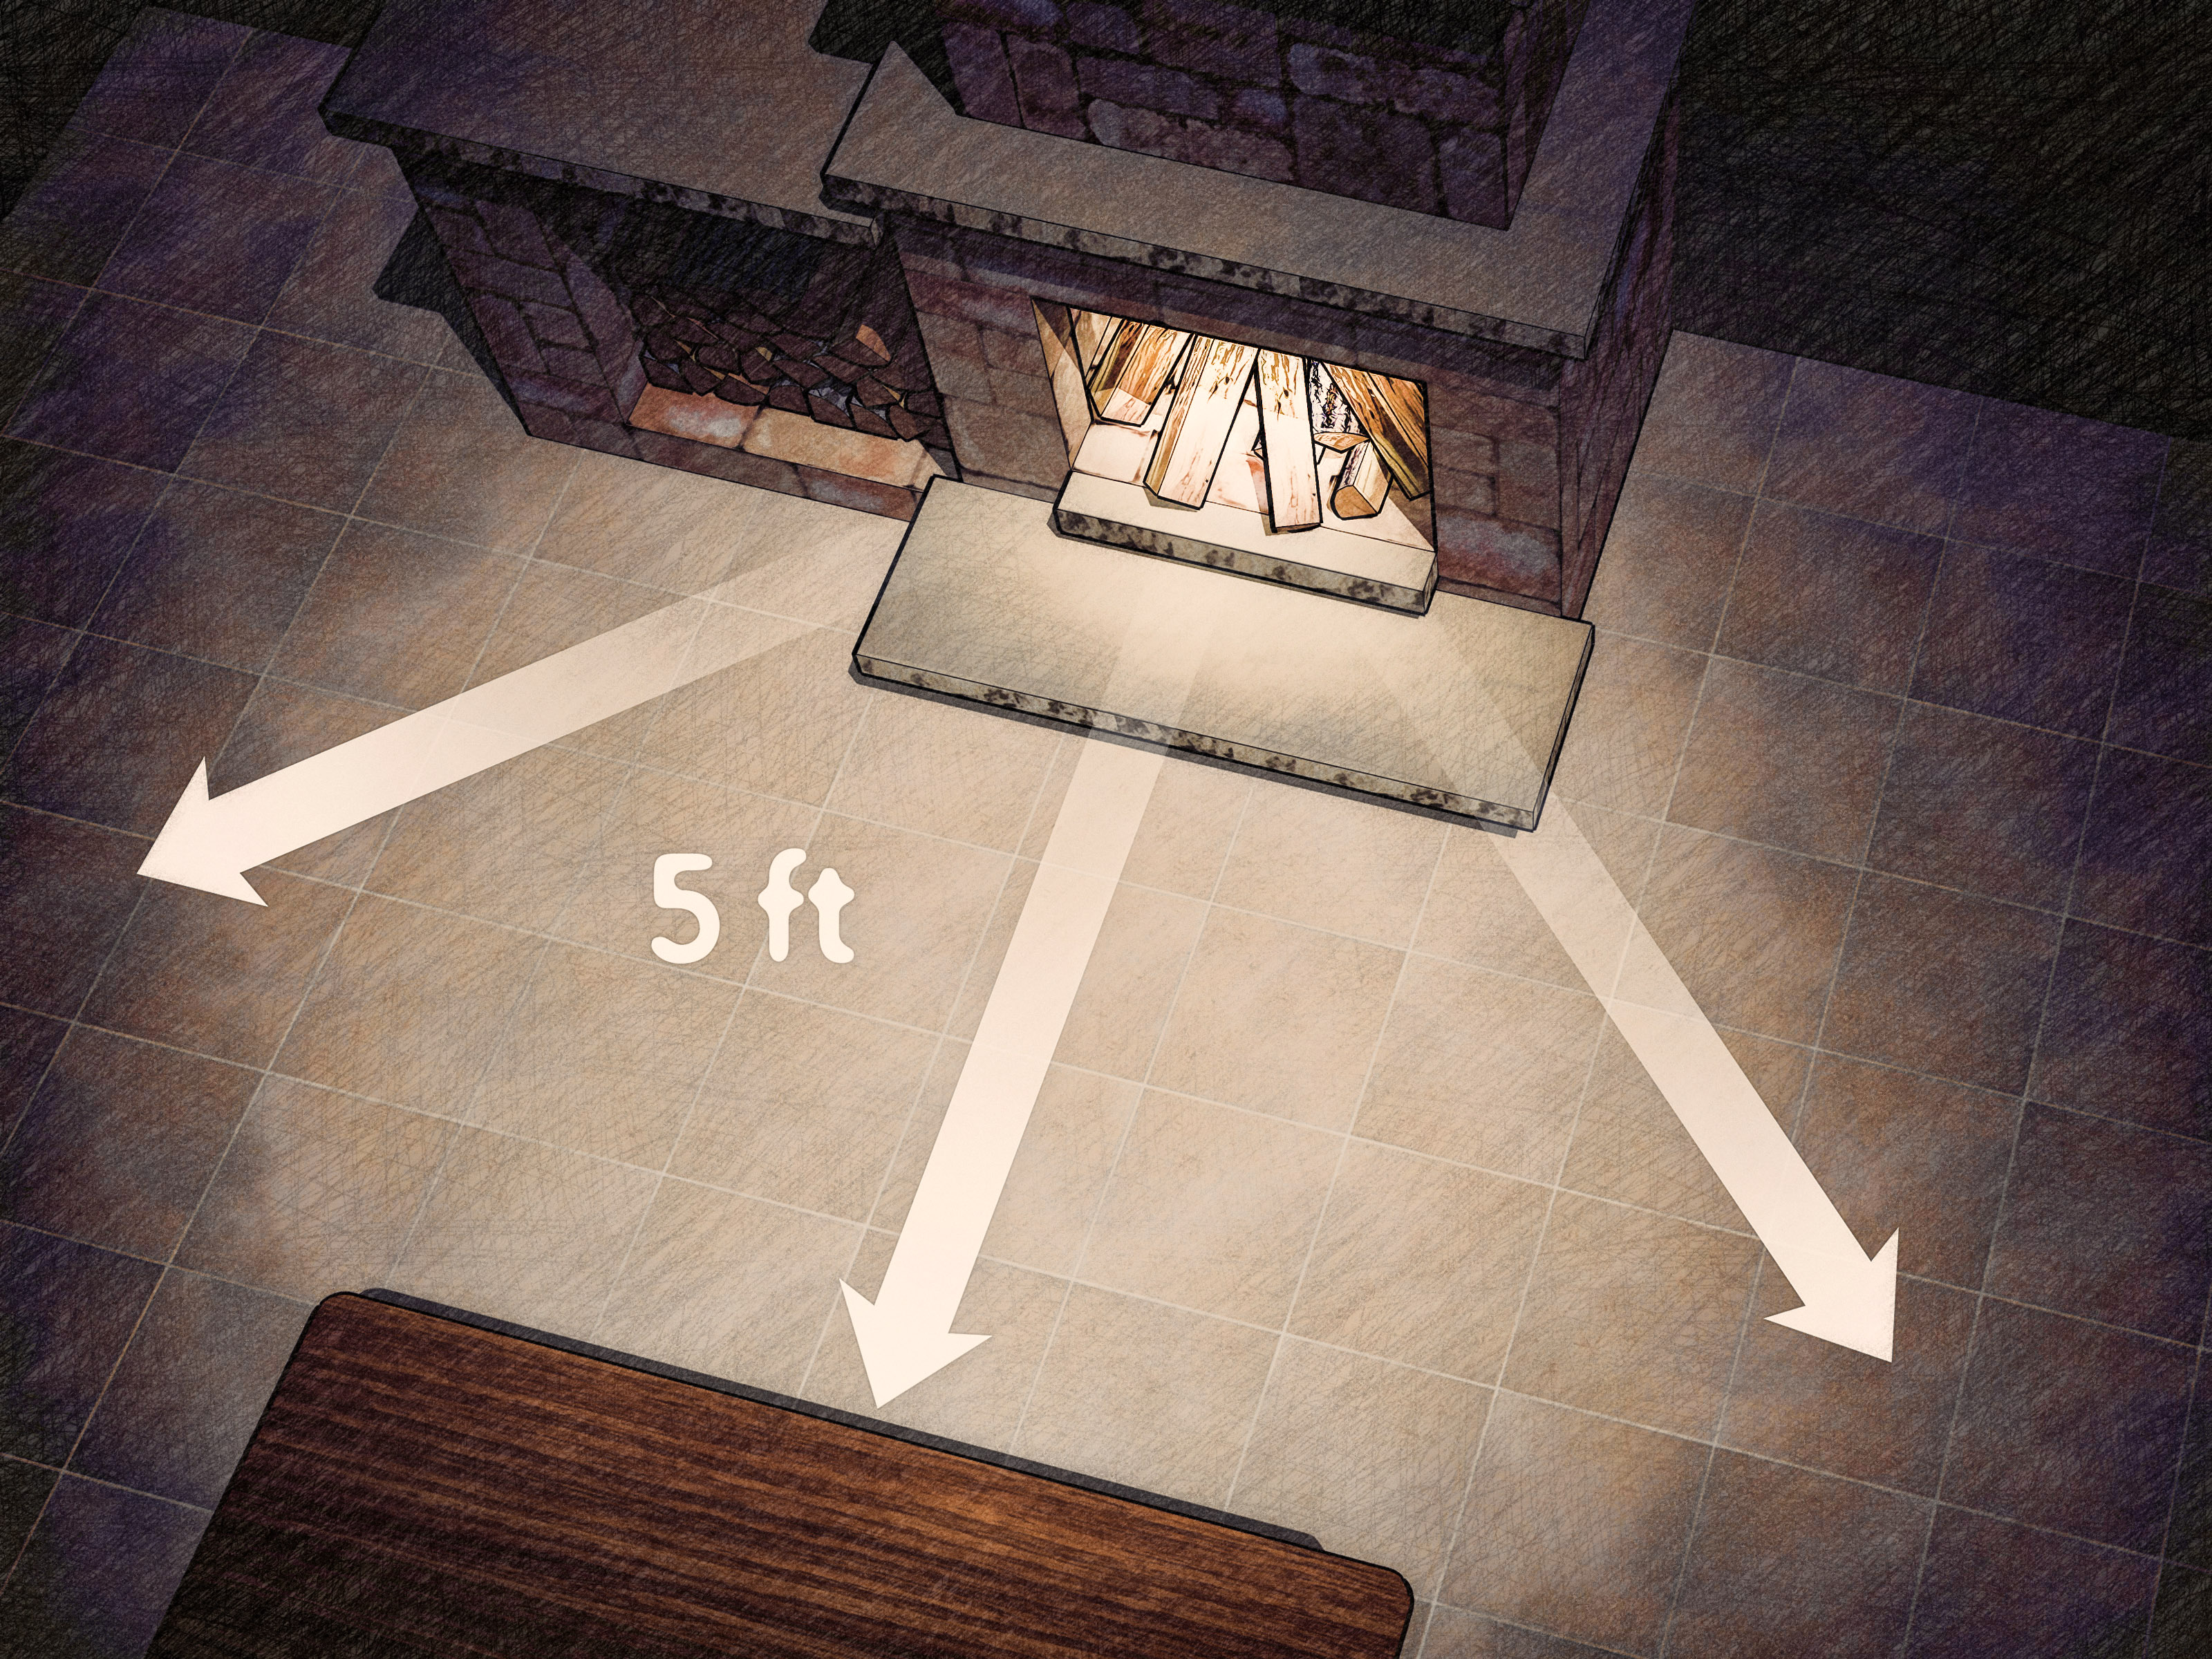 How To Operate A Fireplace 3 Ways To Use A Fireplace Safely Wikihow